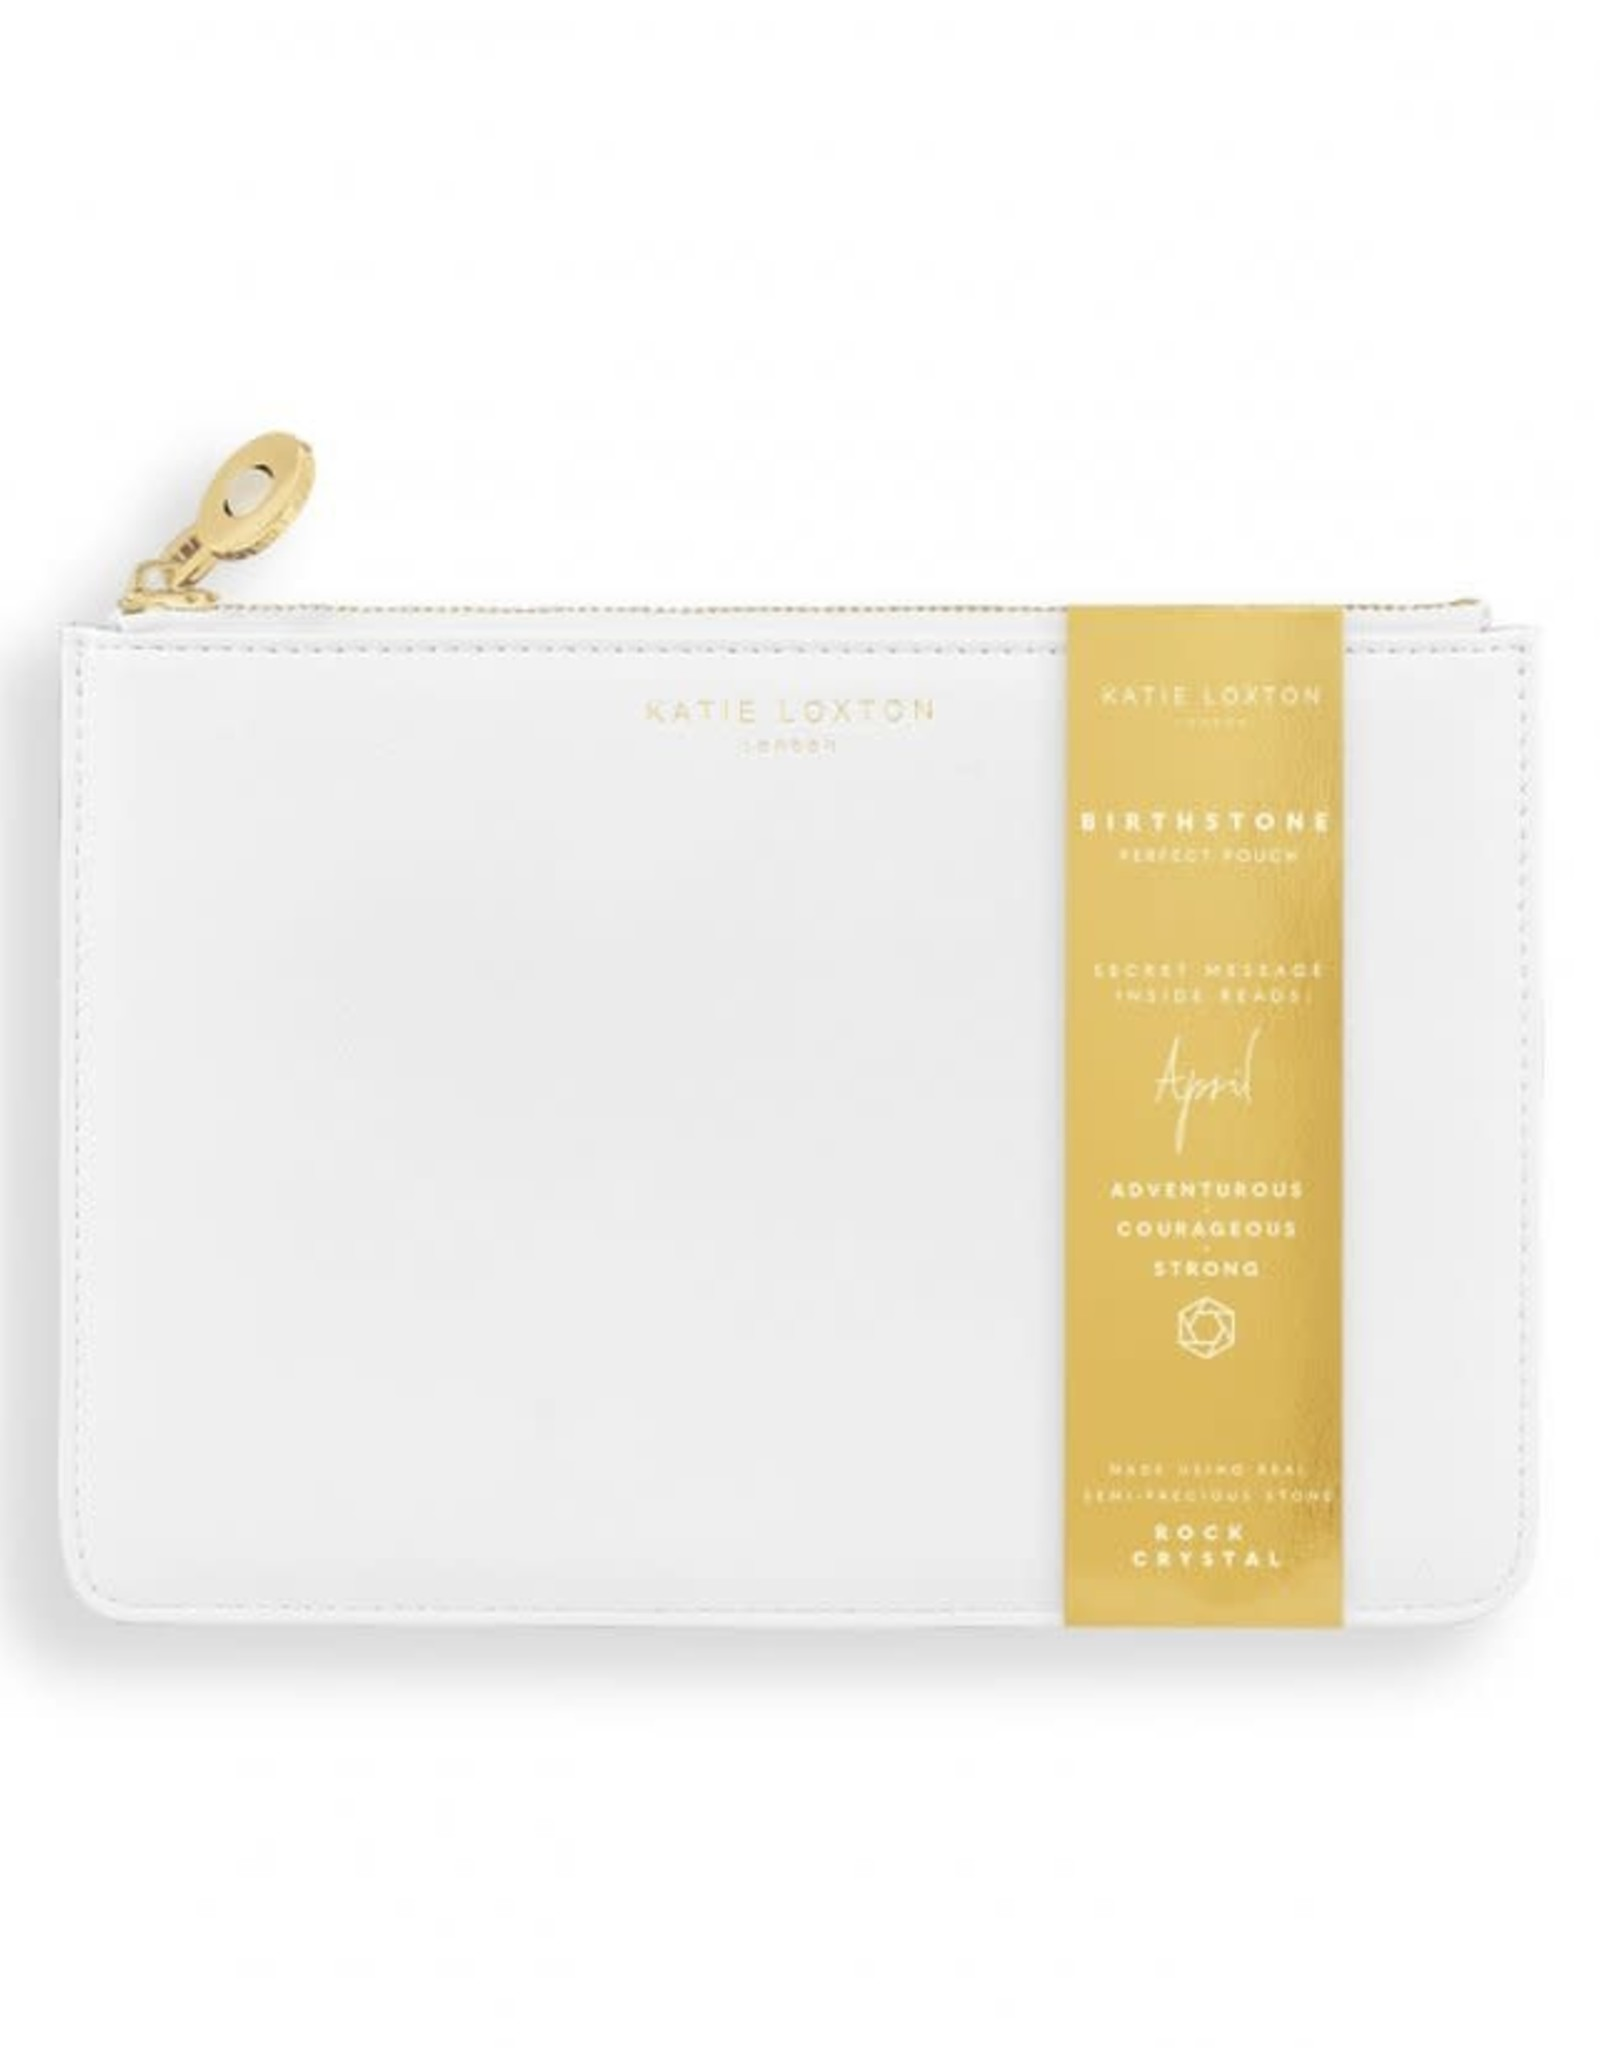 Katie Loxton The Birthstone Perfect Pouch April